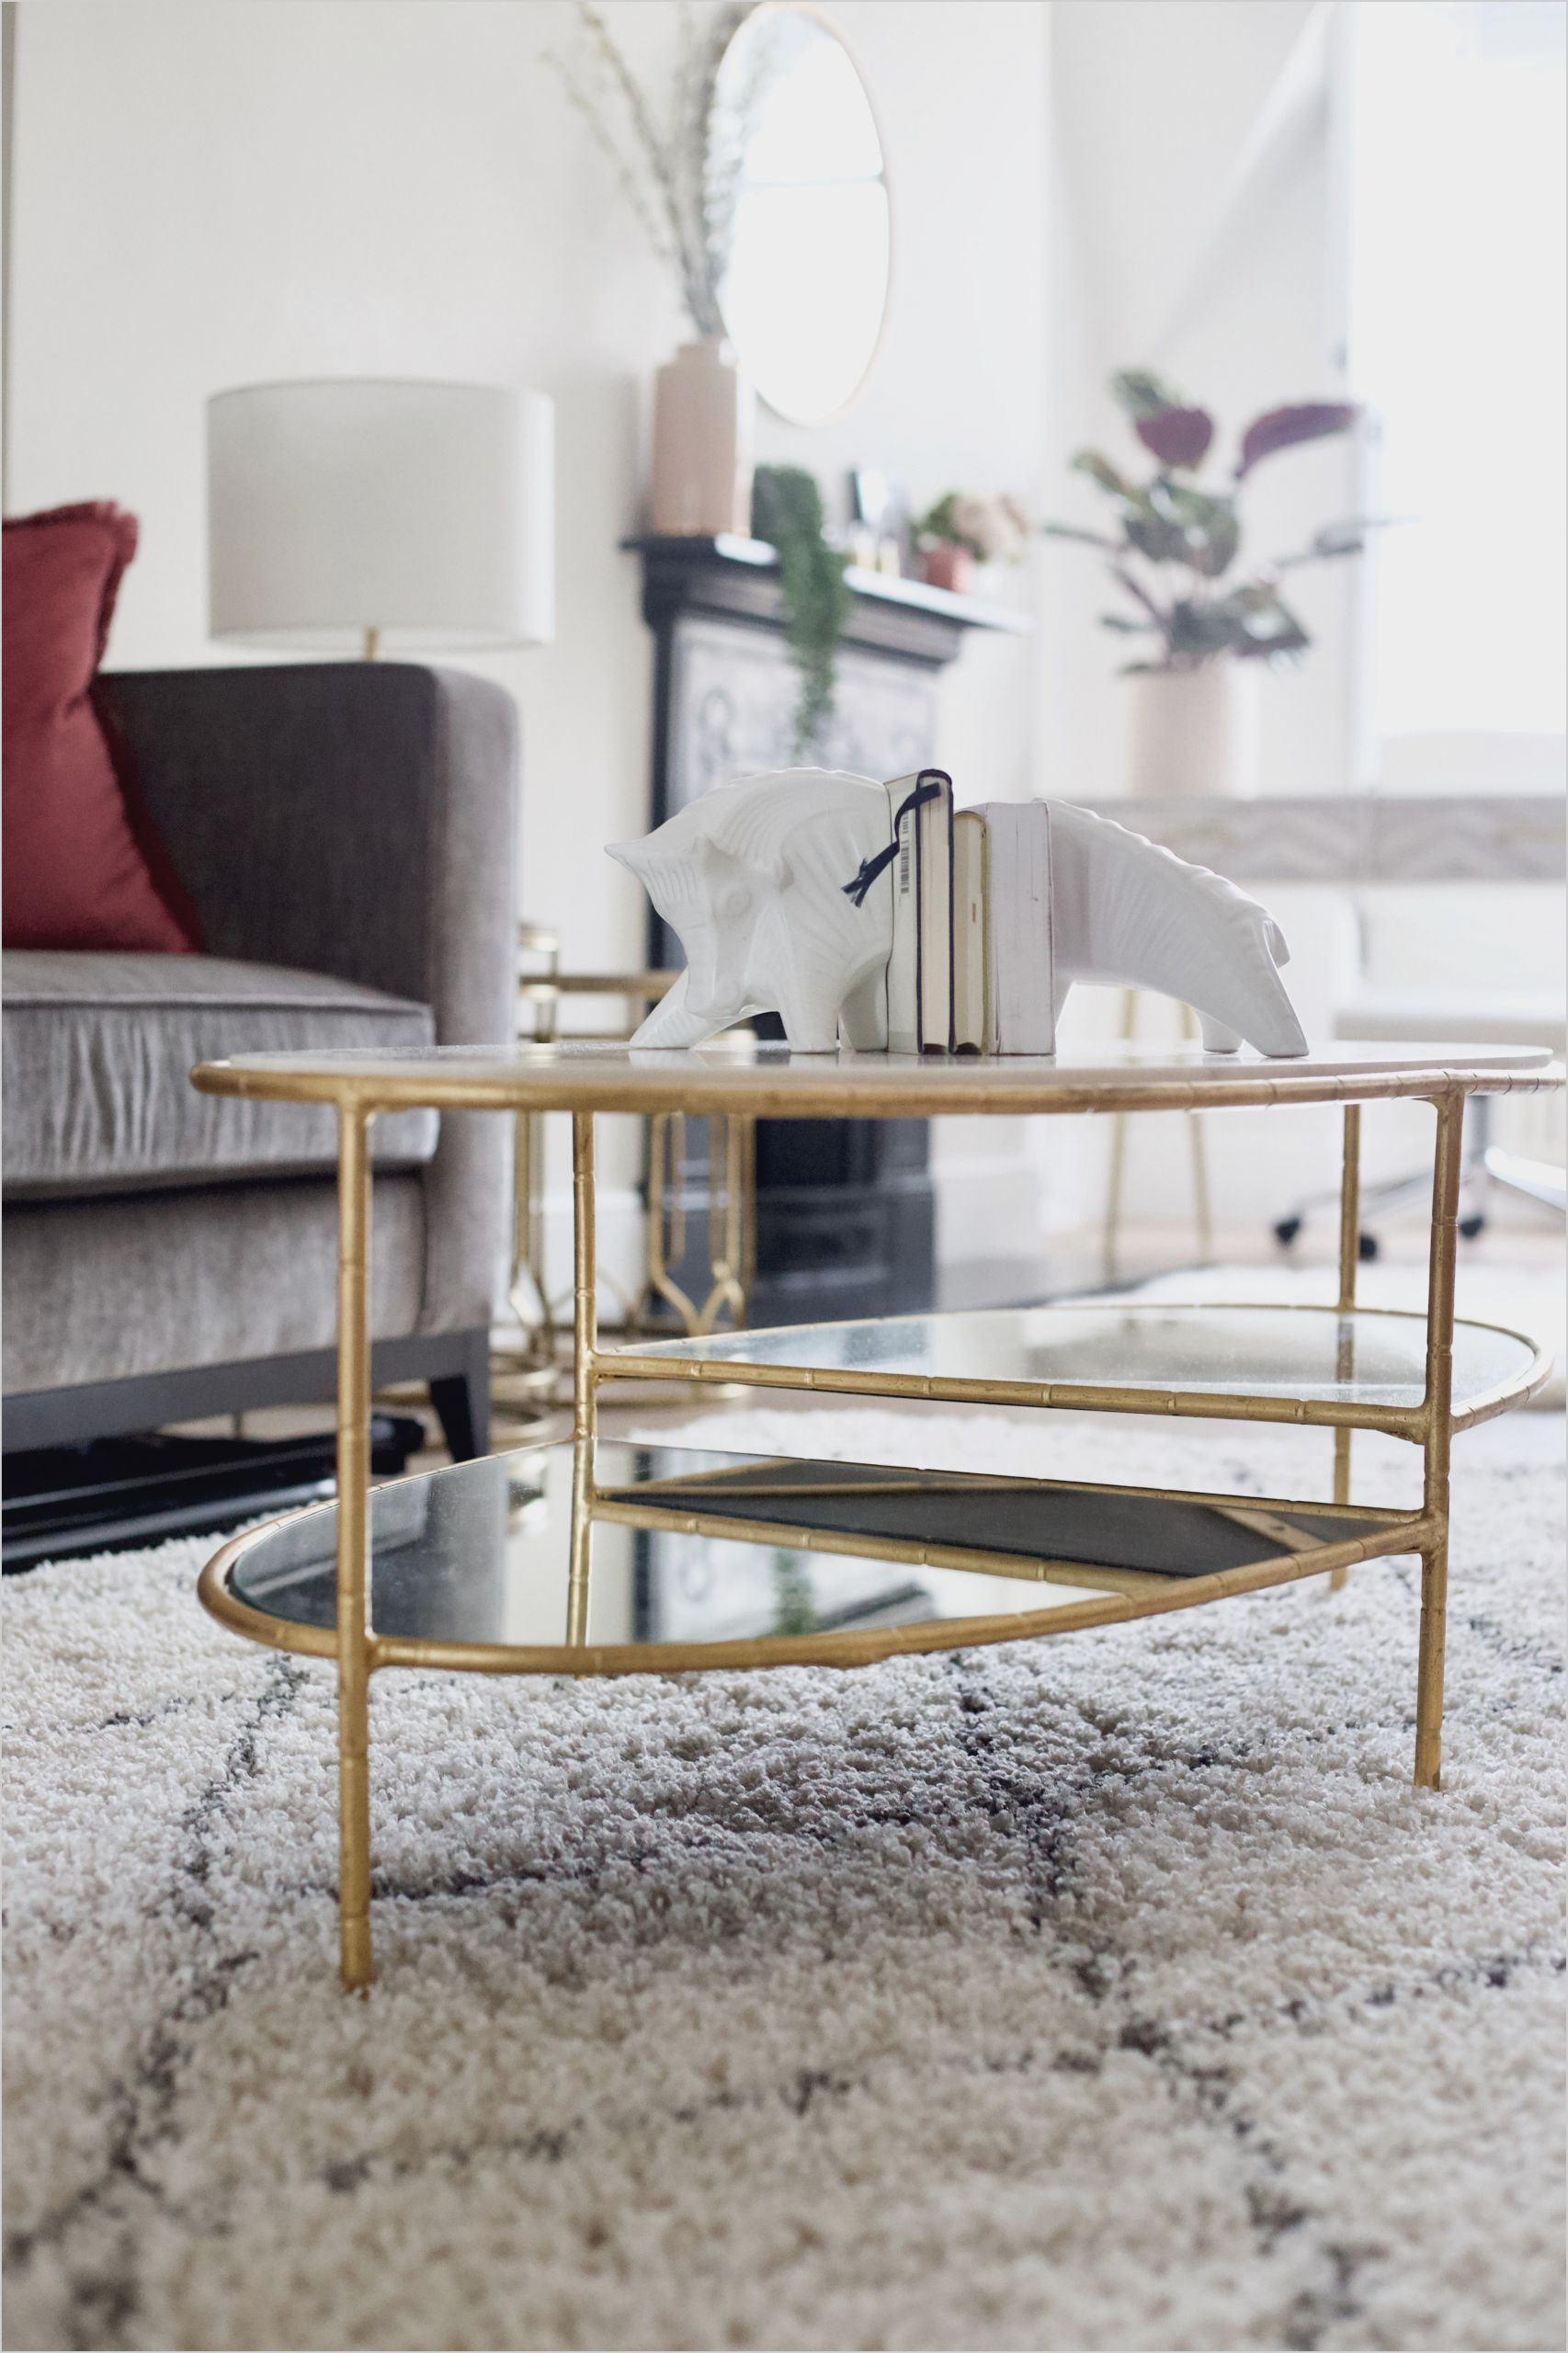 Glass Coffee Table For Small Living Room Oval Glass Dining Room Table Glass Dining Room Table Coffee Table Small glass living room table